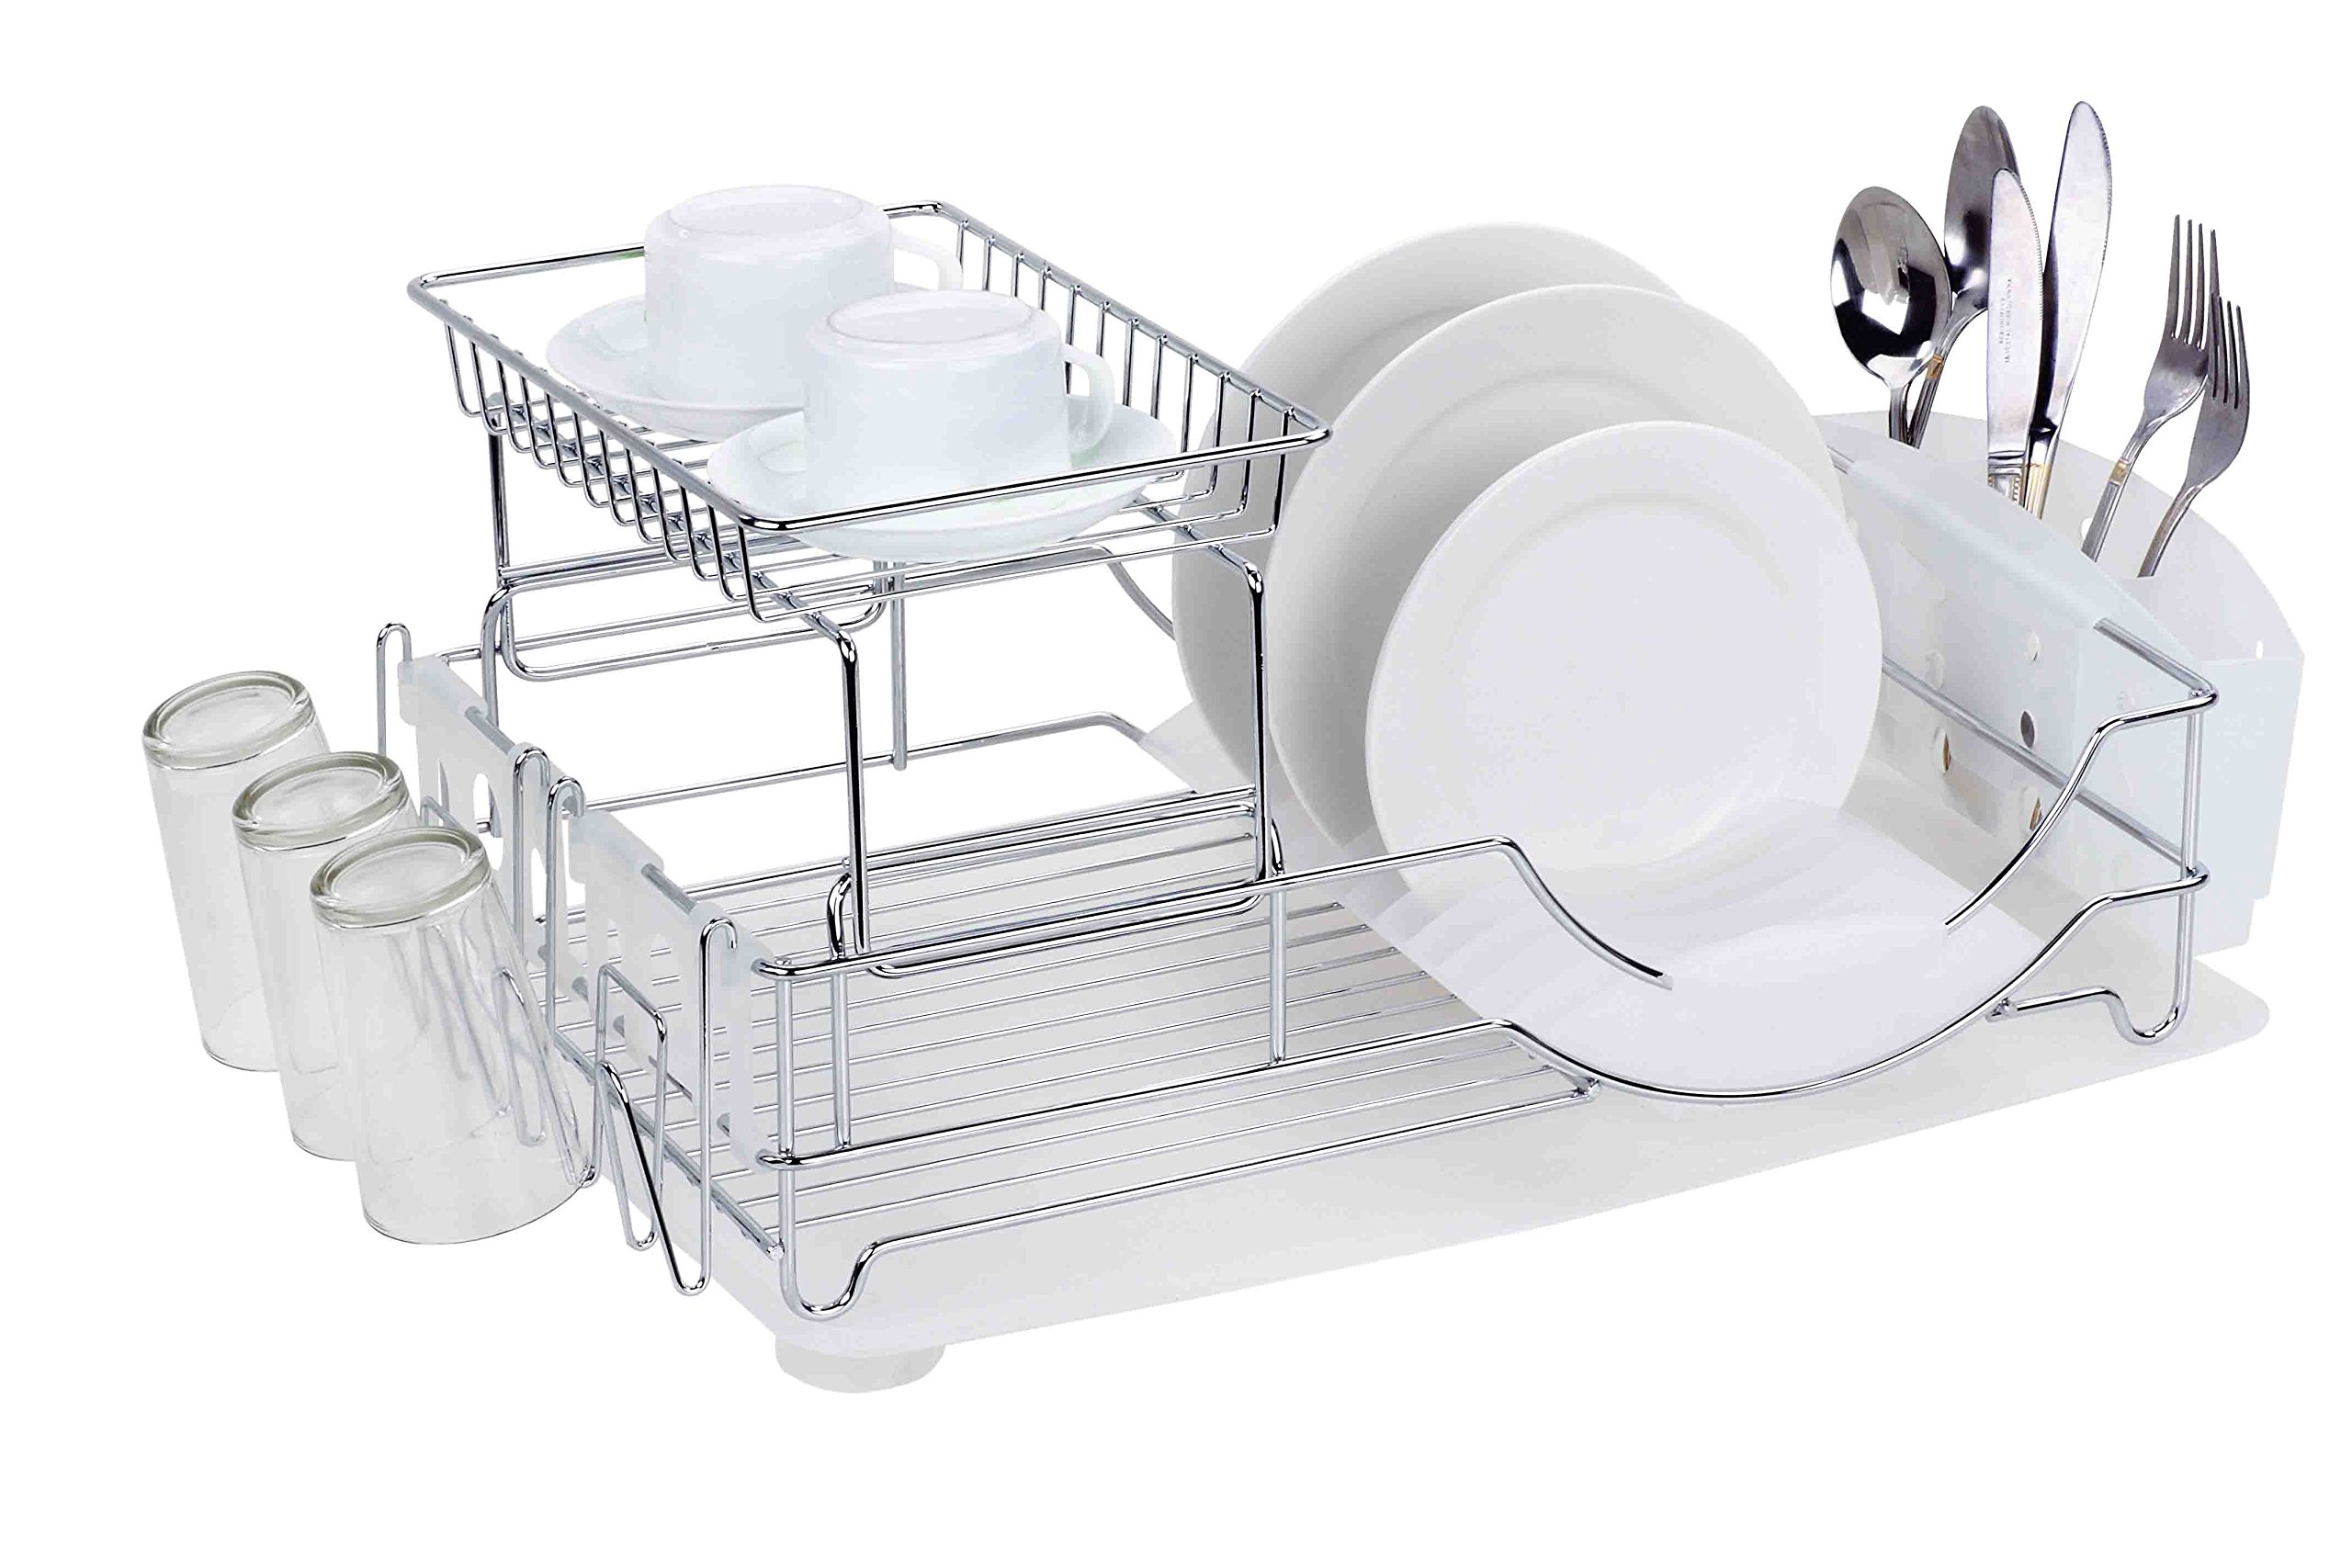 Home Basics 2-Tier Dish Rack and Drainer, White